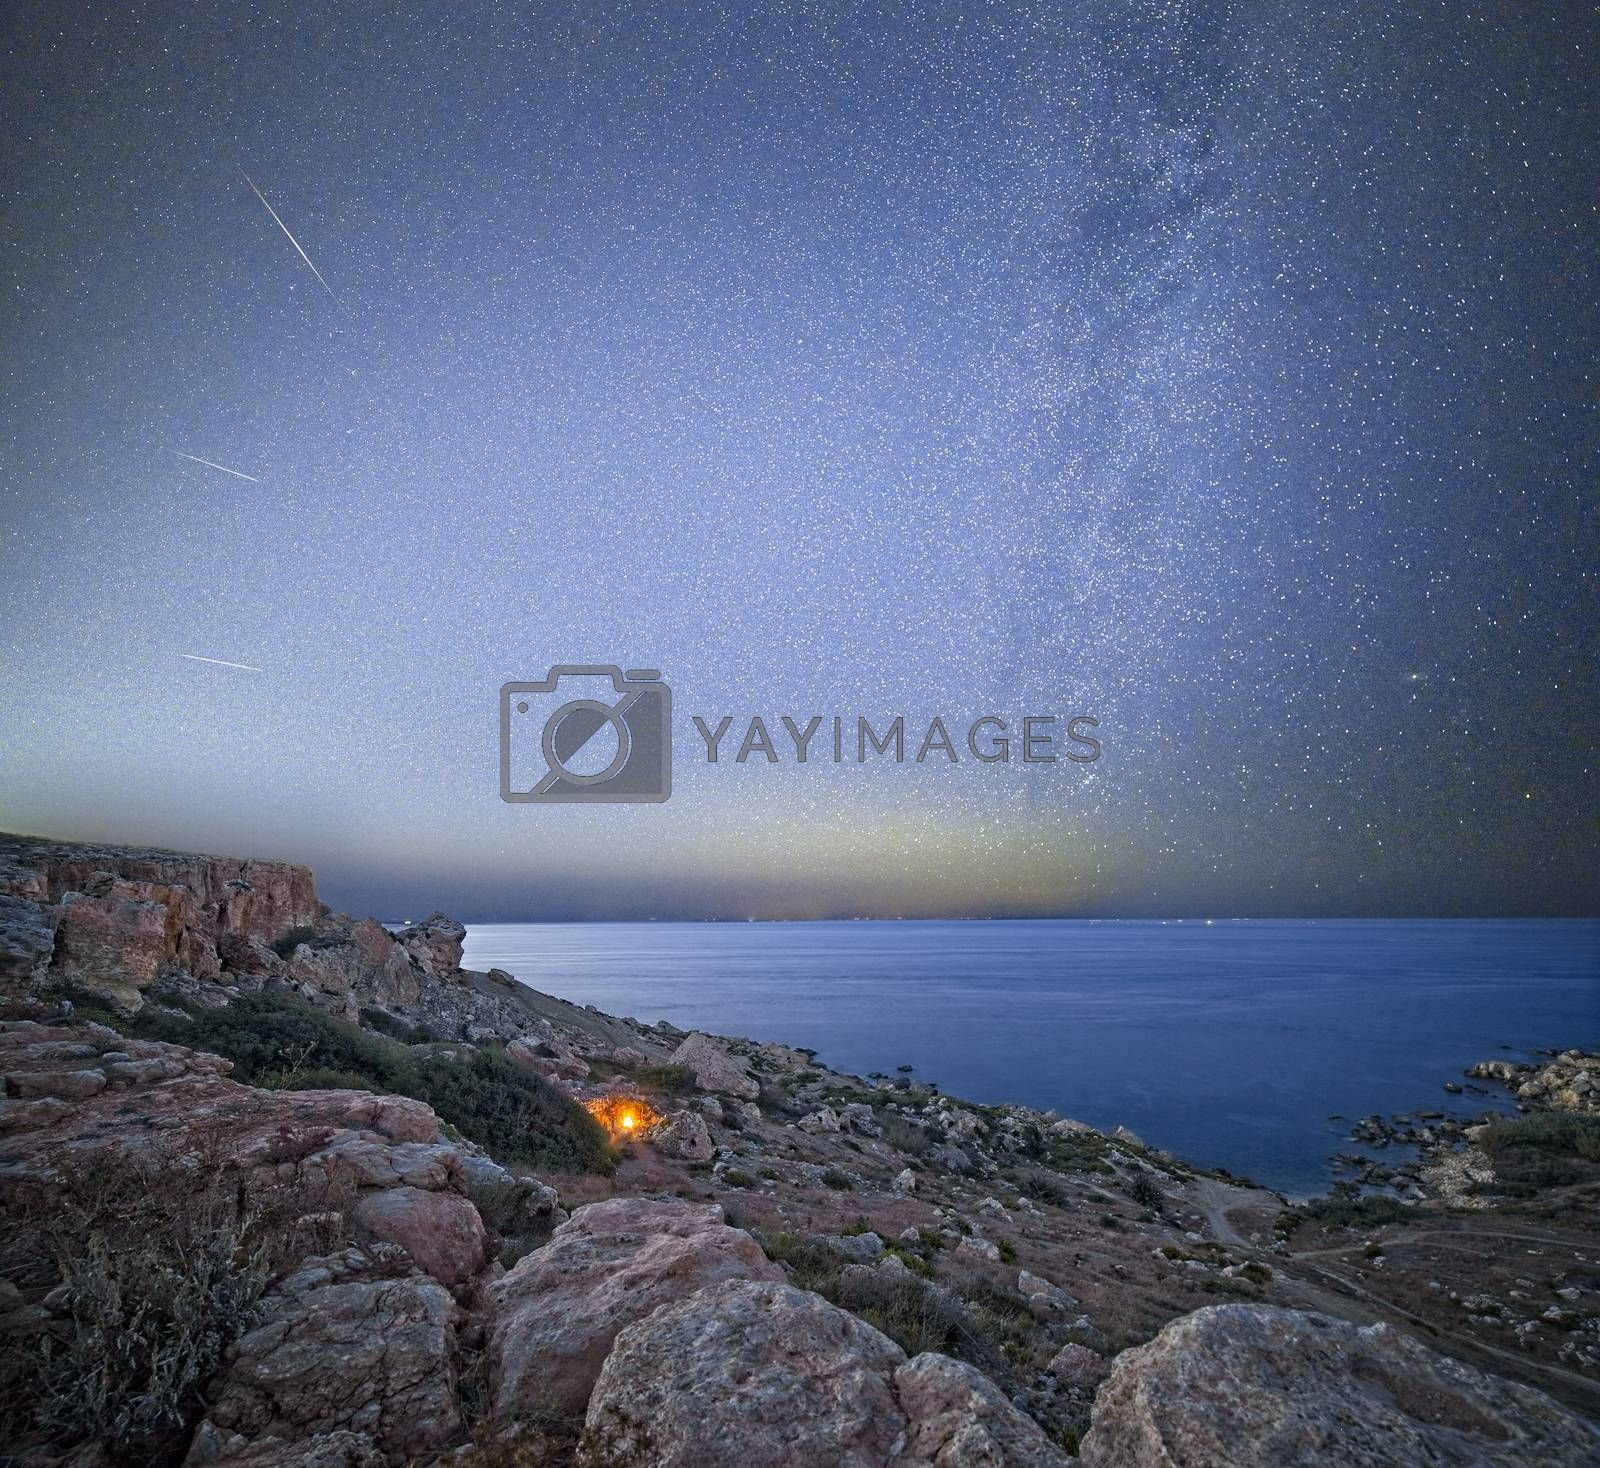 A campfire burns below the cliffs of Selmun, while three Perseid meteors radiate away from the Milky Way, which in turn seemingly rises up from the glare caused by the distant specks of light on the Sicilian coast.